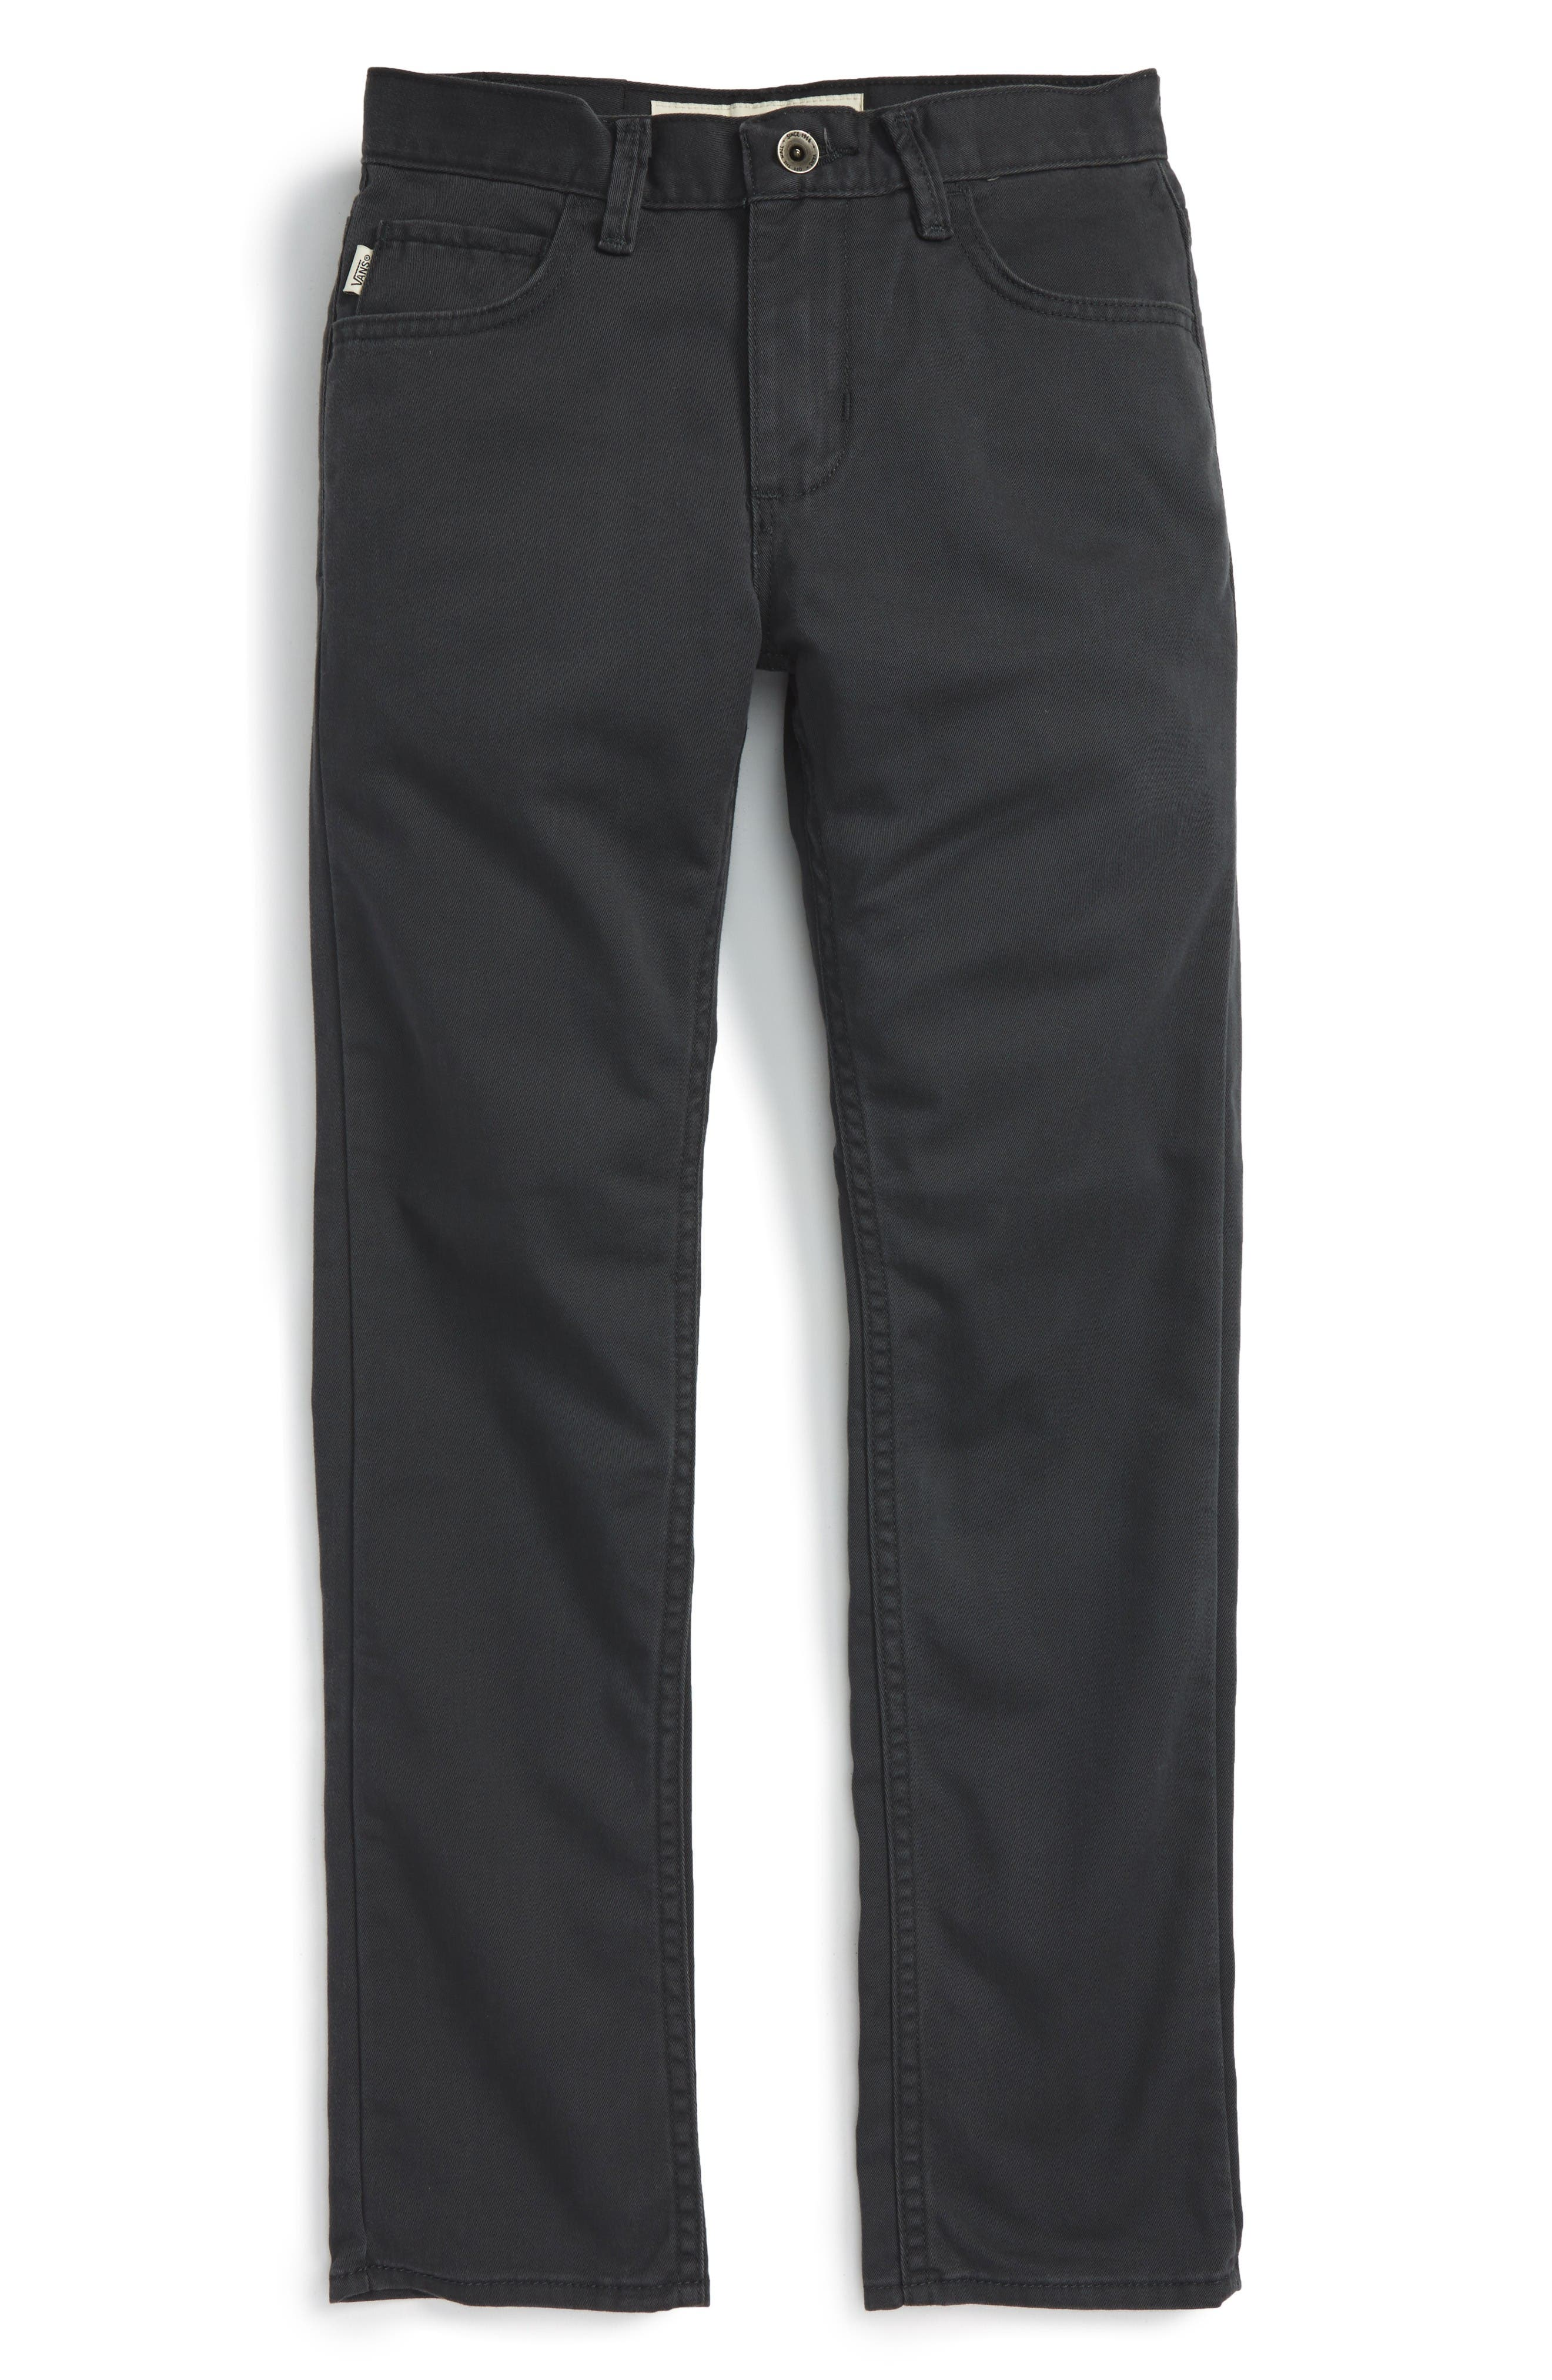 Vans V56 Standard AV Covina Pants (Big Boys)